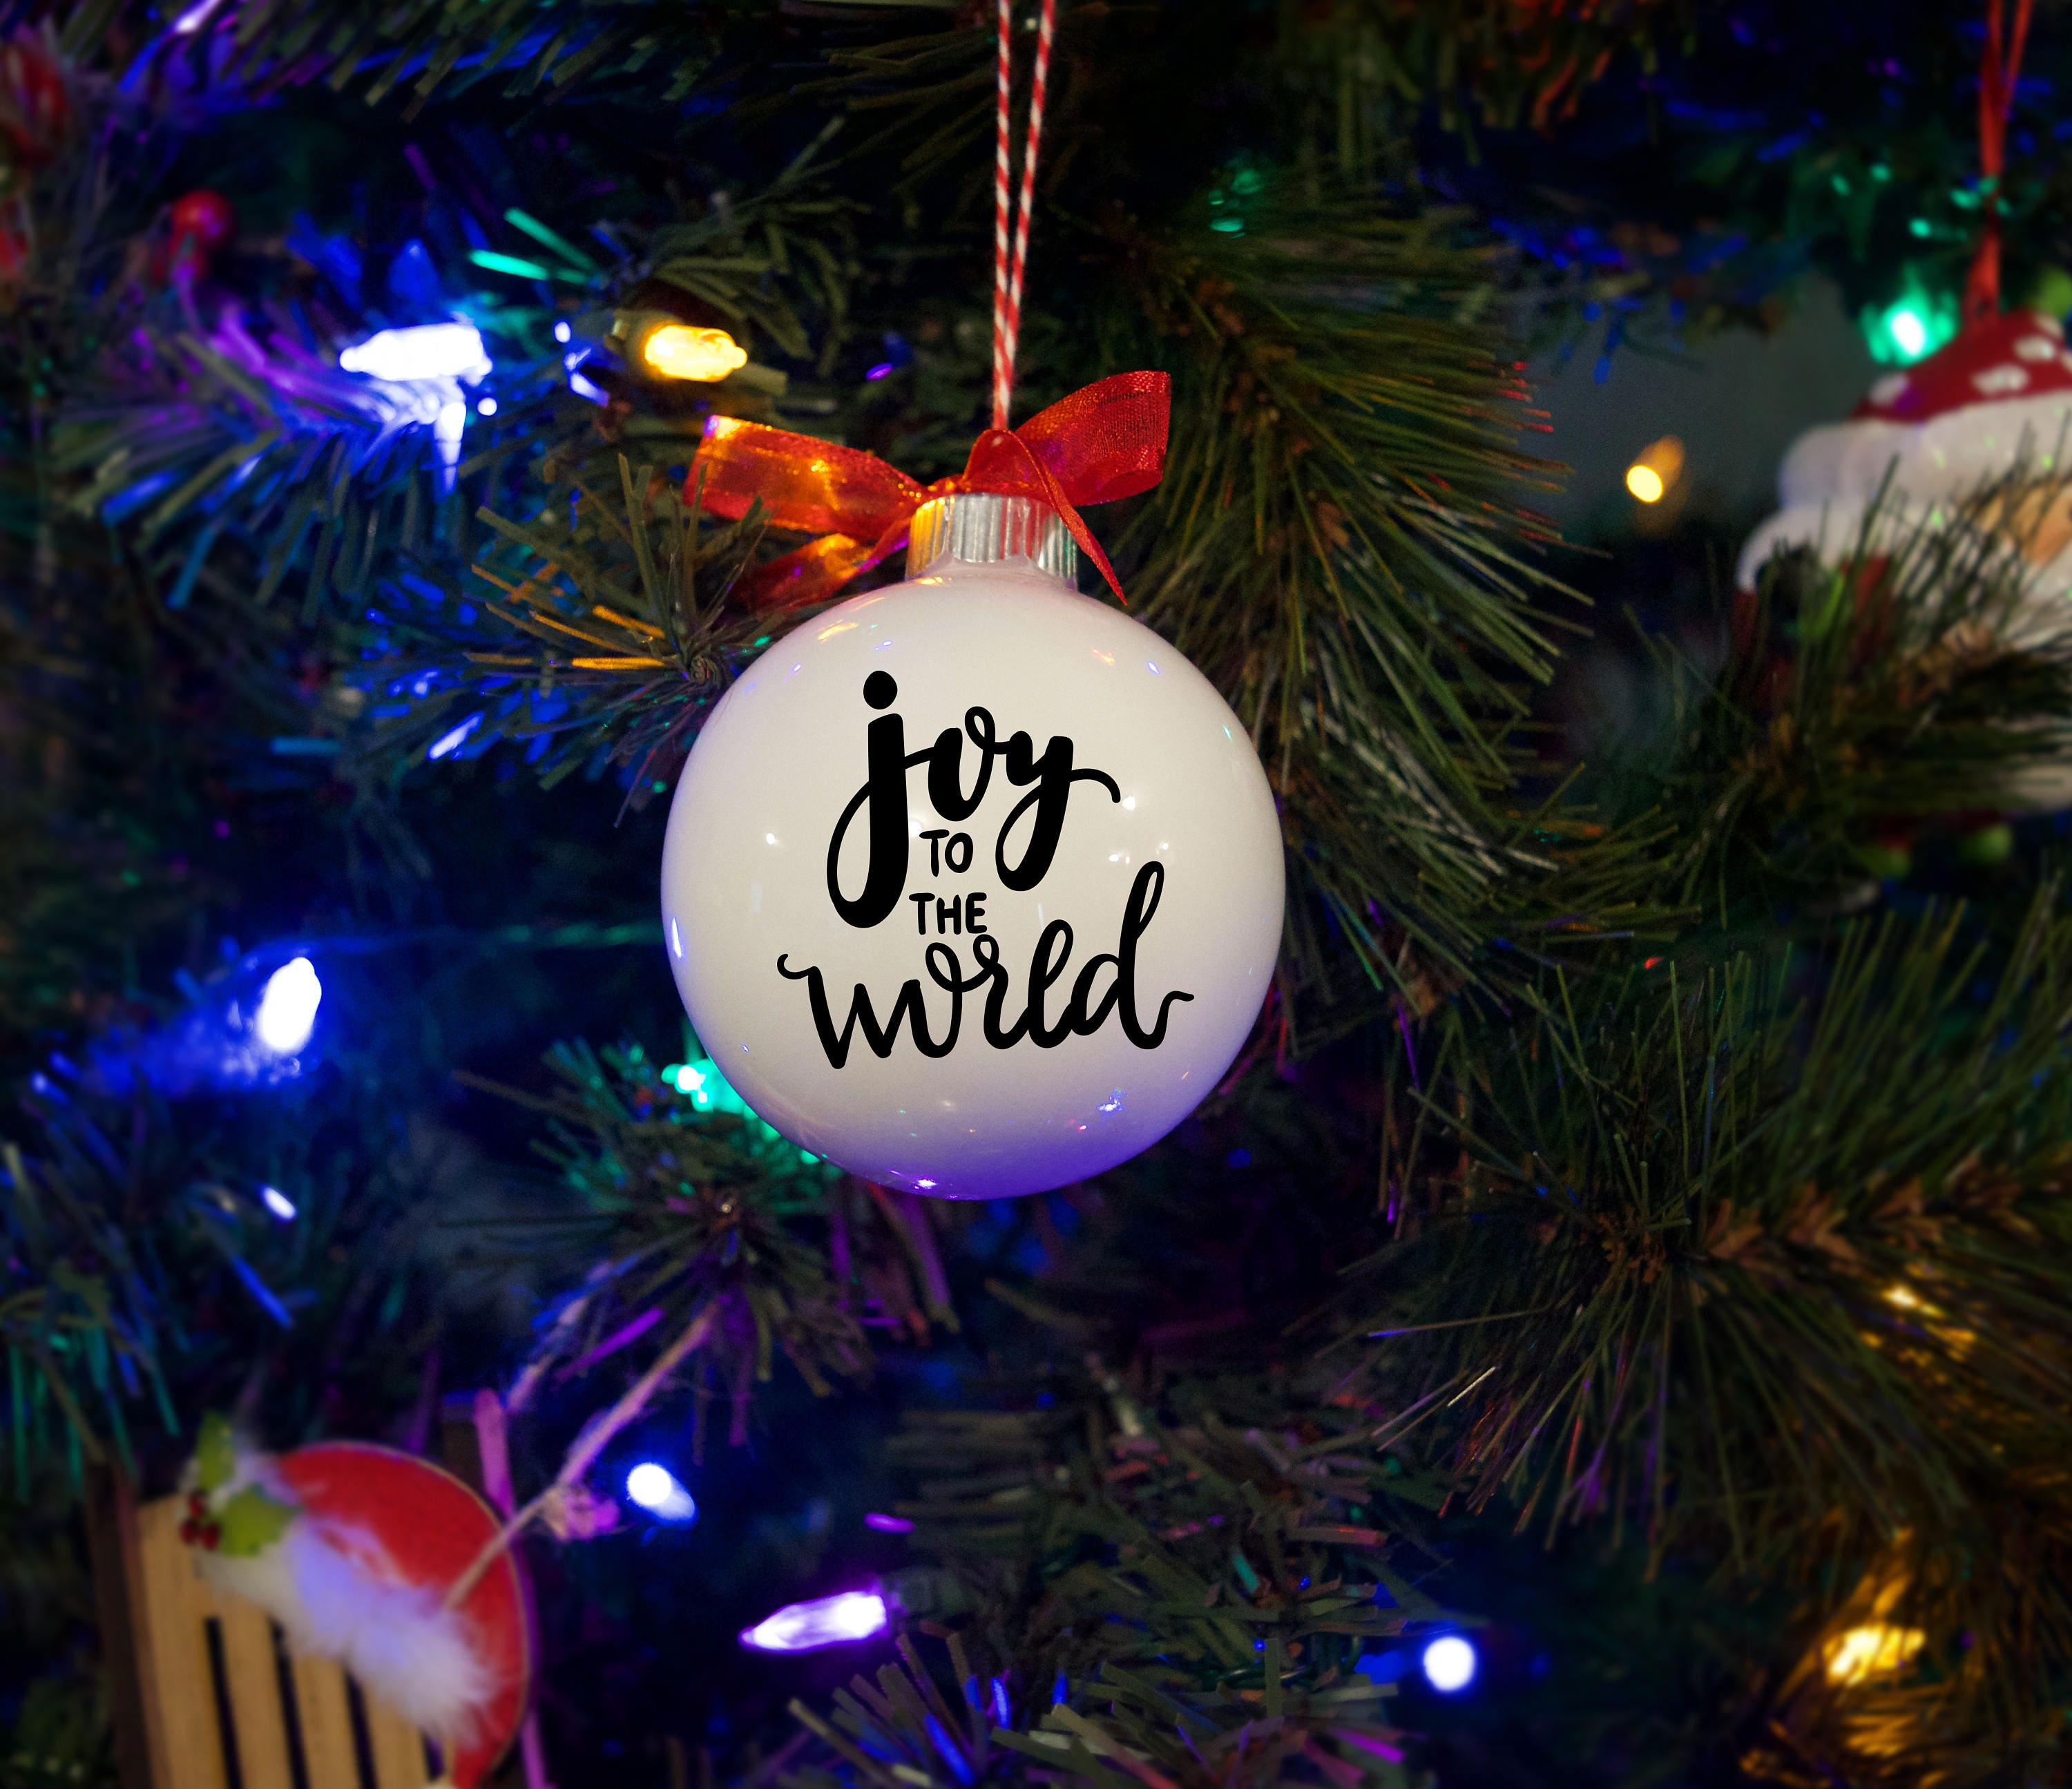 Christmas Ornament Joy To The World Free